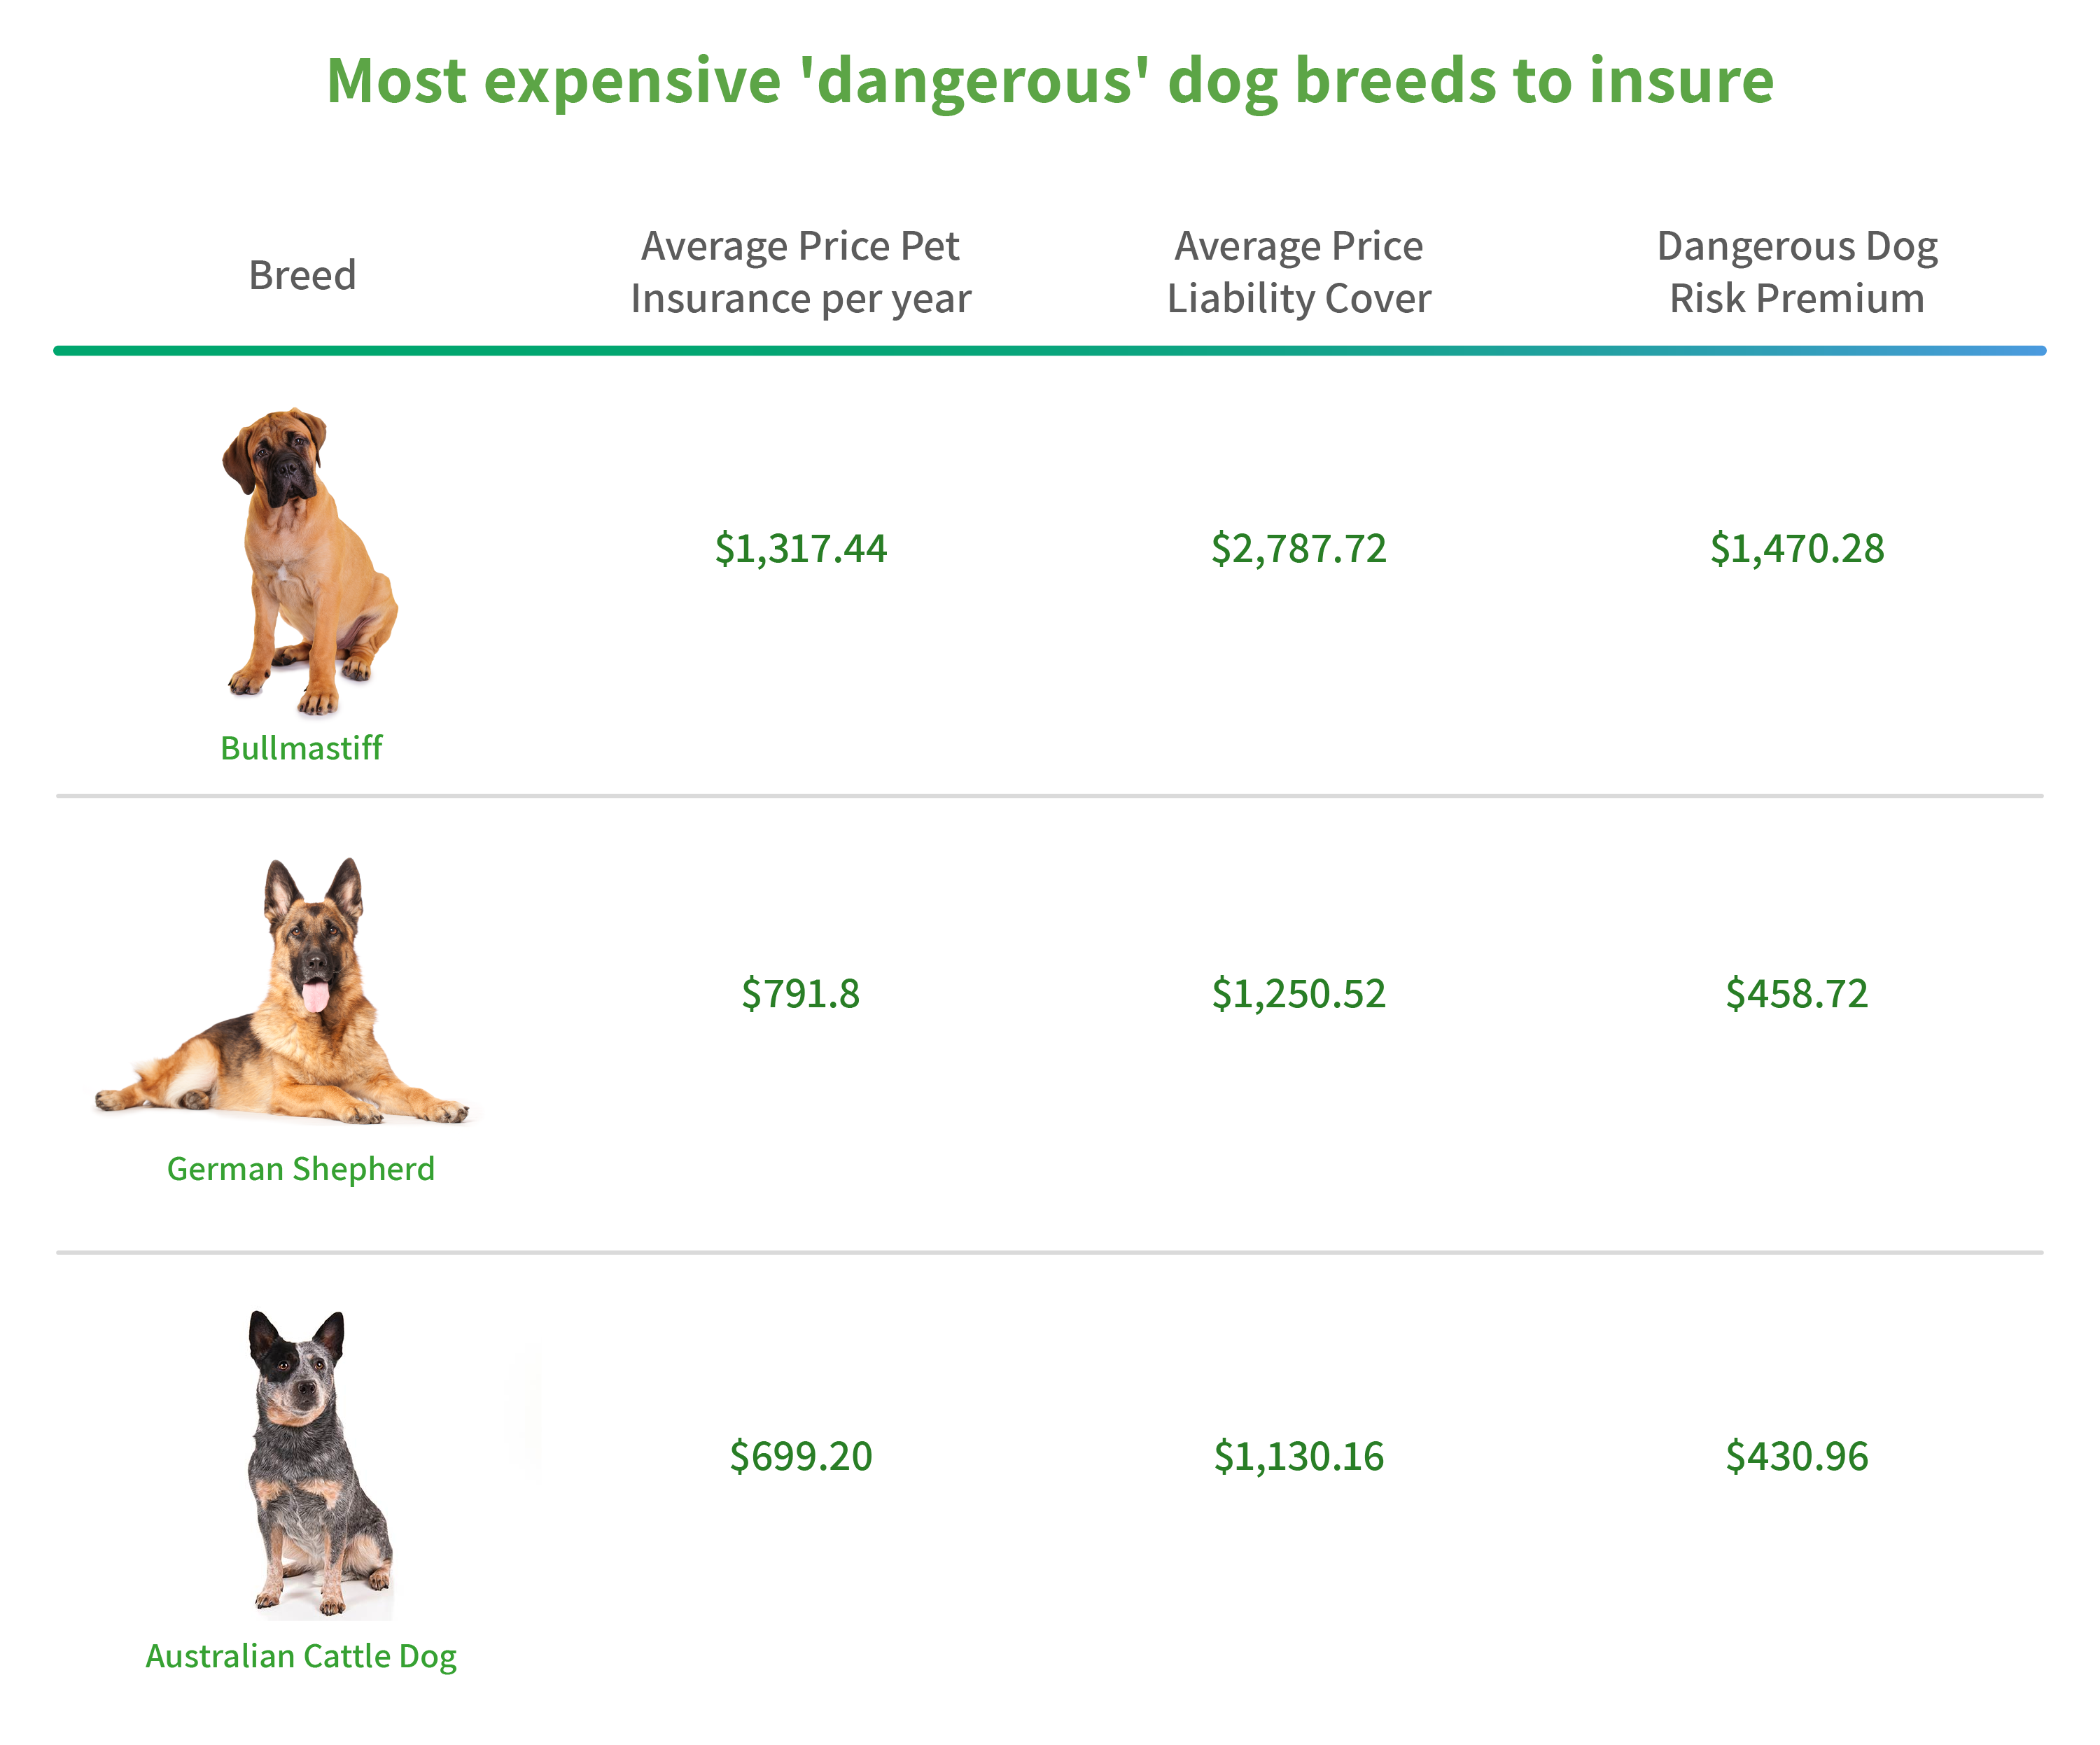 Graphic showing most expensive 'dangerous' dog breeds to insure